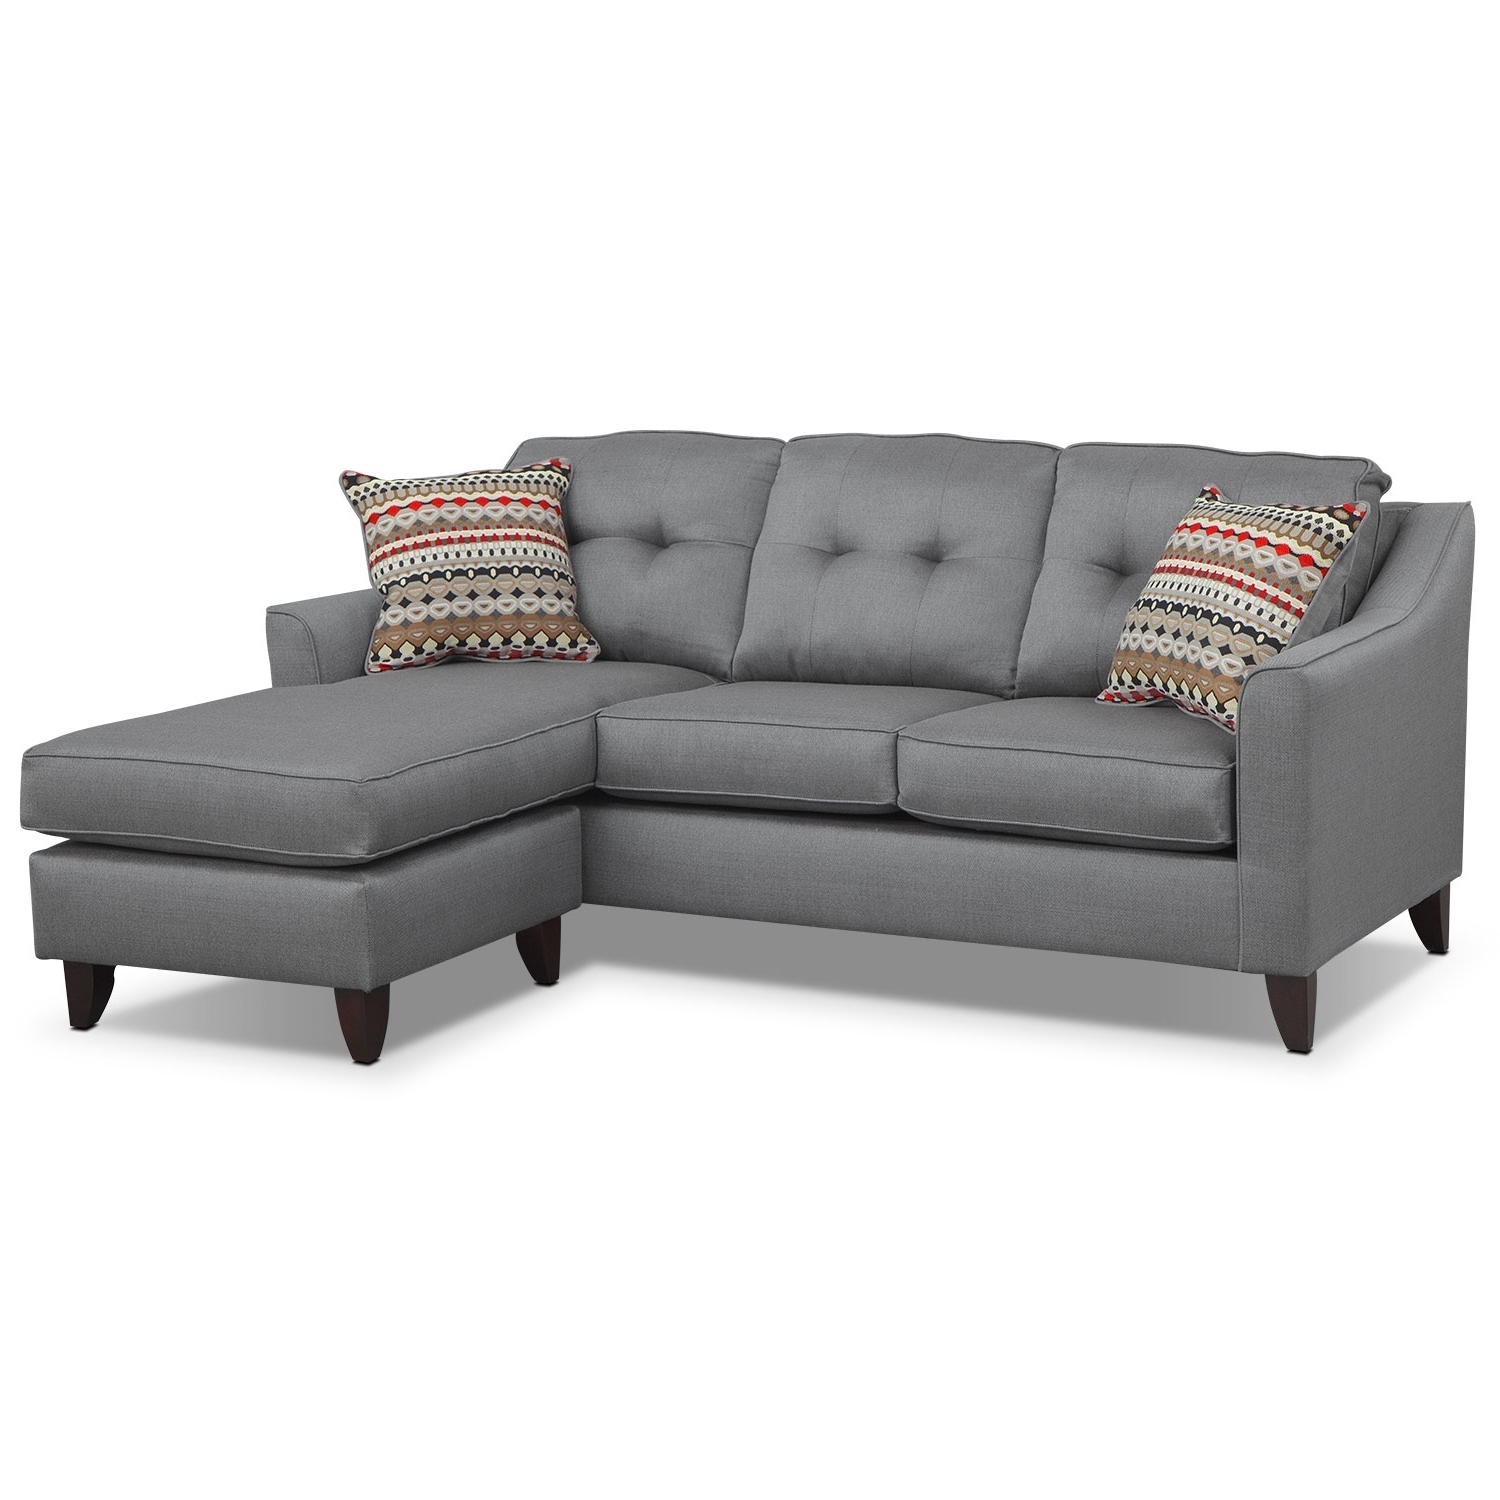 Grey Chaise Sofas For Most Recent Sofa Design Ideas: Dark Couch Grey Sofa Chaise Light Design Light (View 8 of 15)